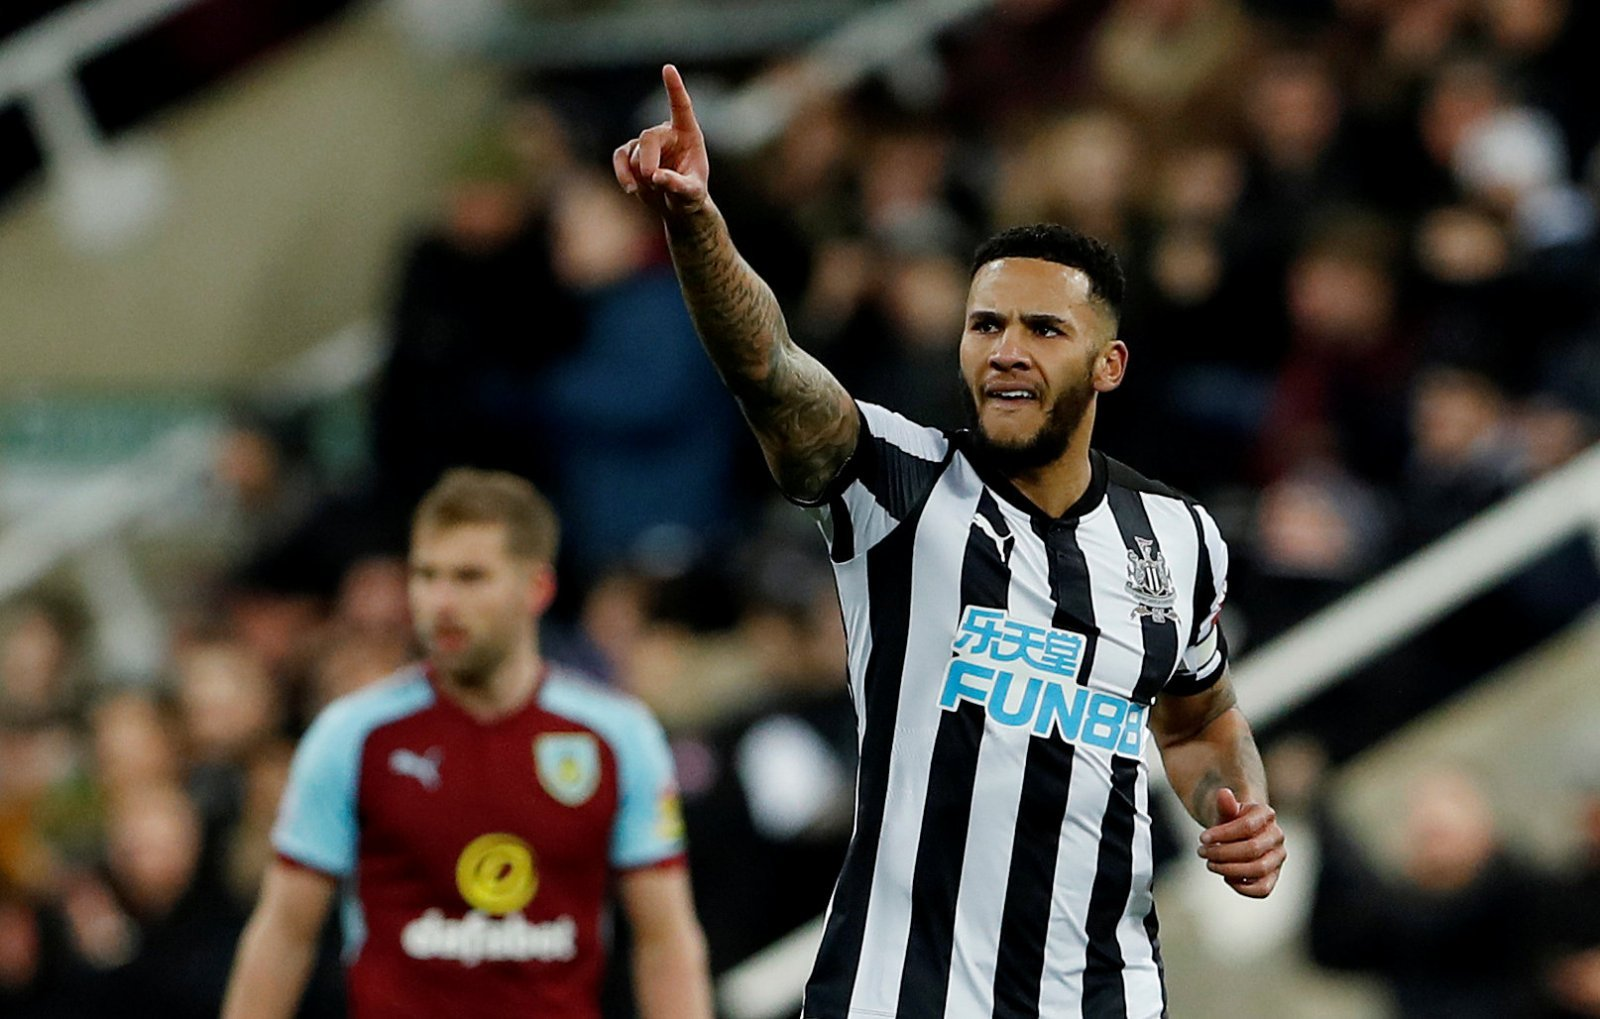 79% of Newcastle fans expect Lascelles to leave soon